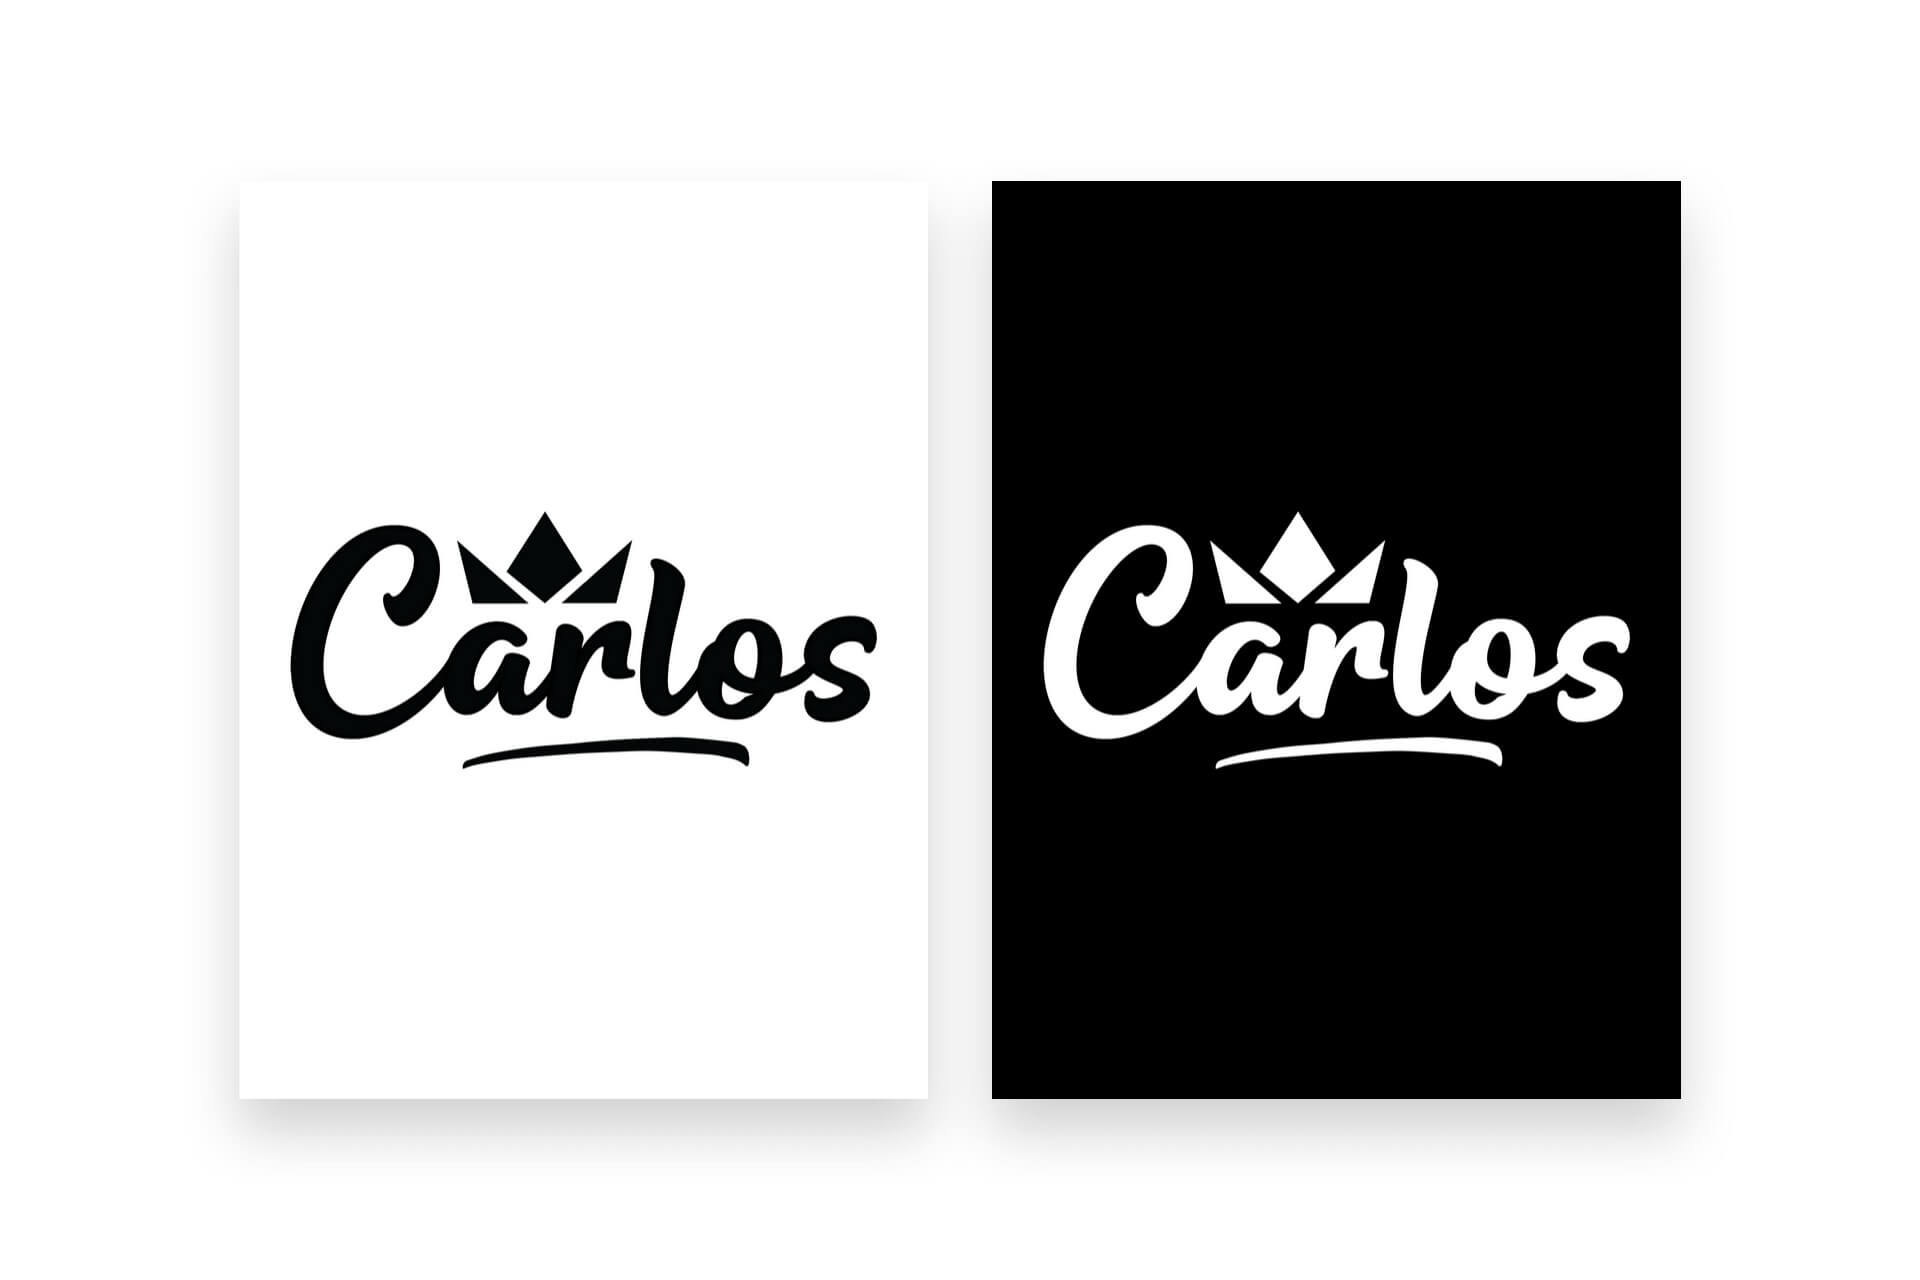 Carlos Black and White Logo - The Logo Creative